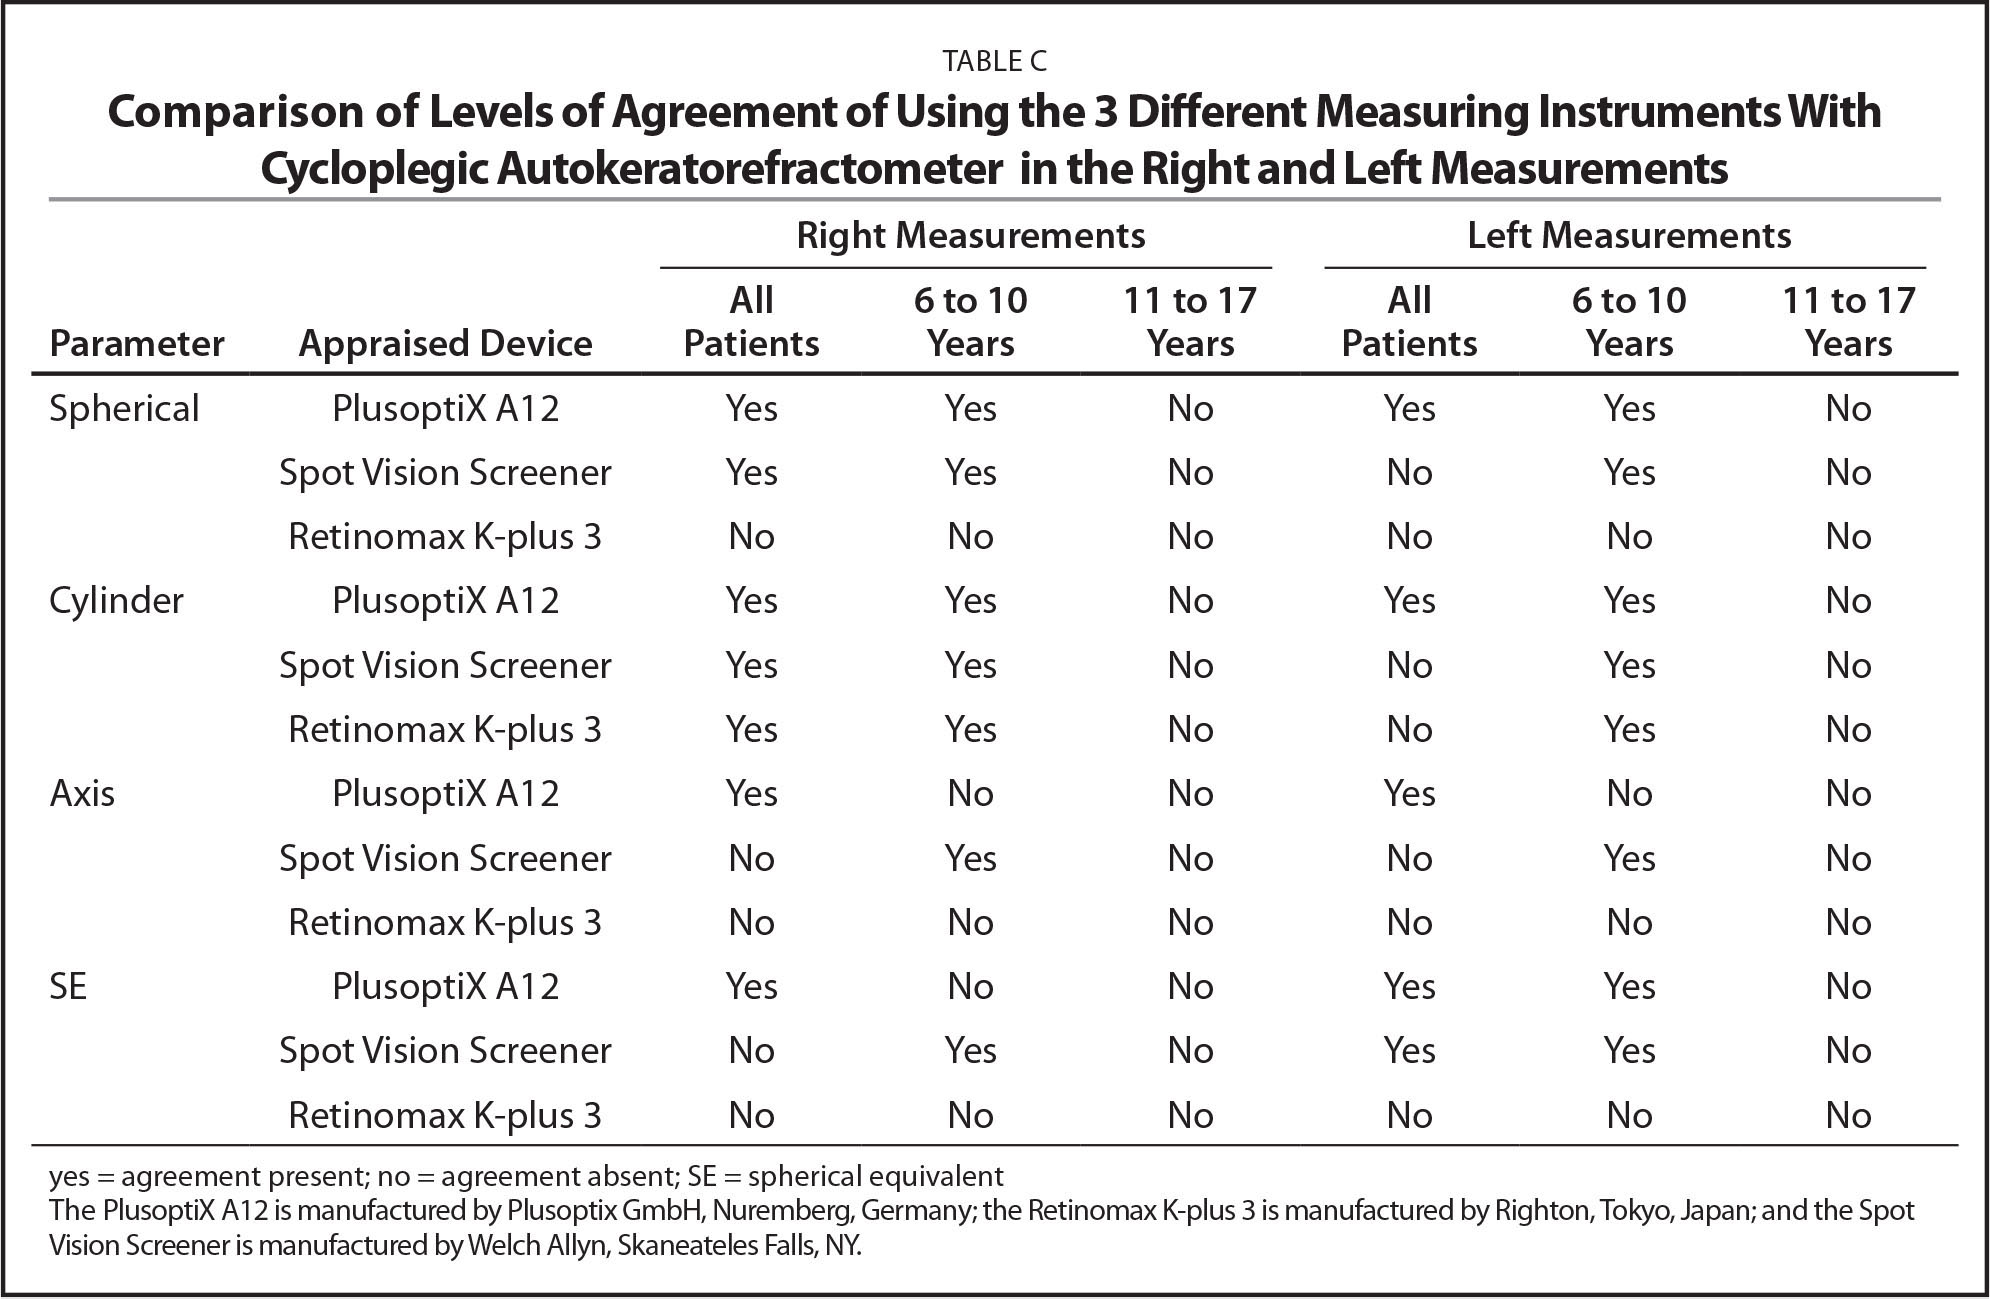 Comparison of Levels of Agreement of Using the 3 Different Measuring Instruments With Cycloplegic Autokeratorefractometer in the Right and Left Measurements